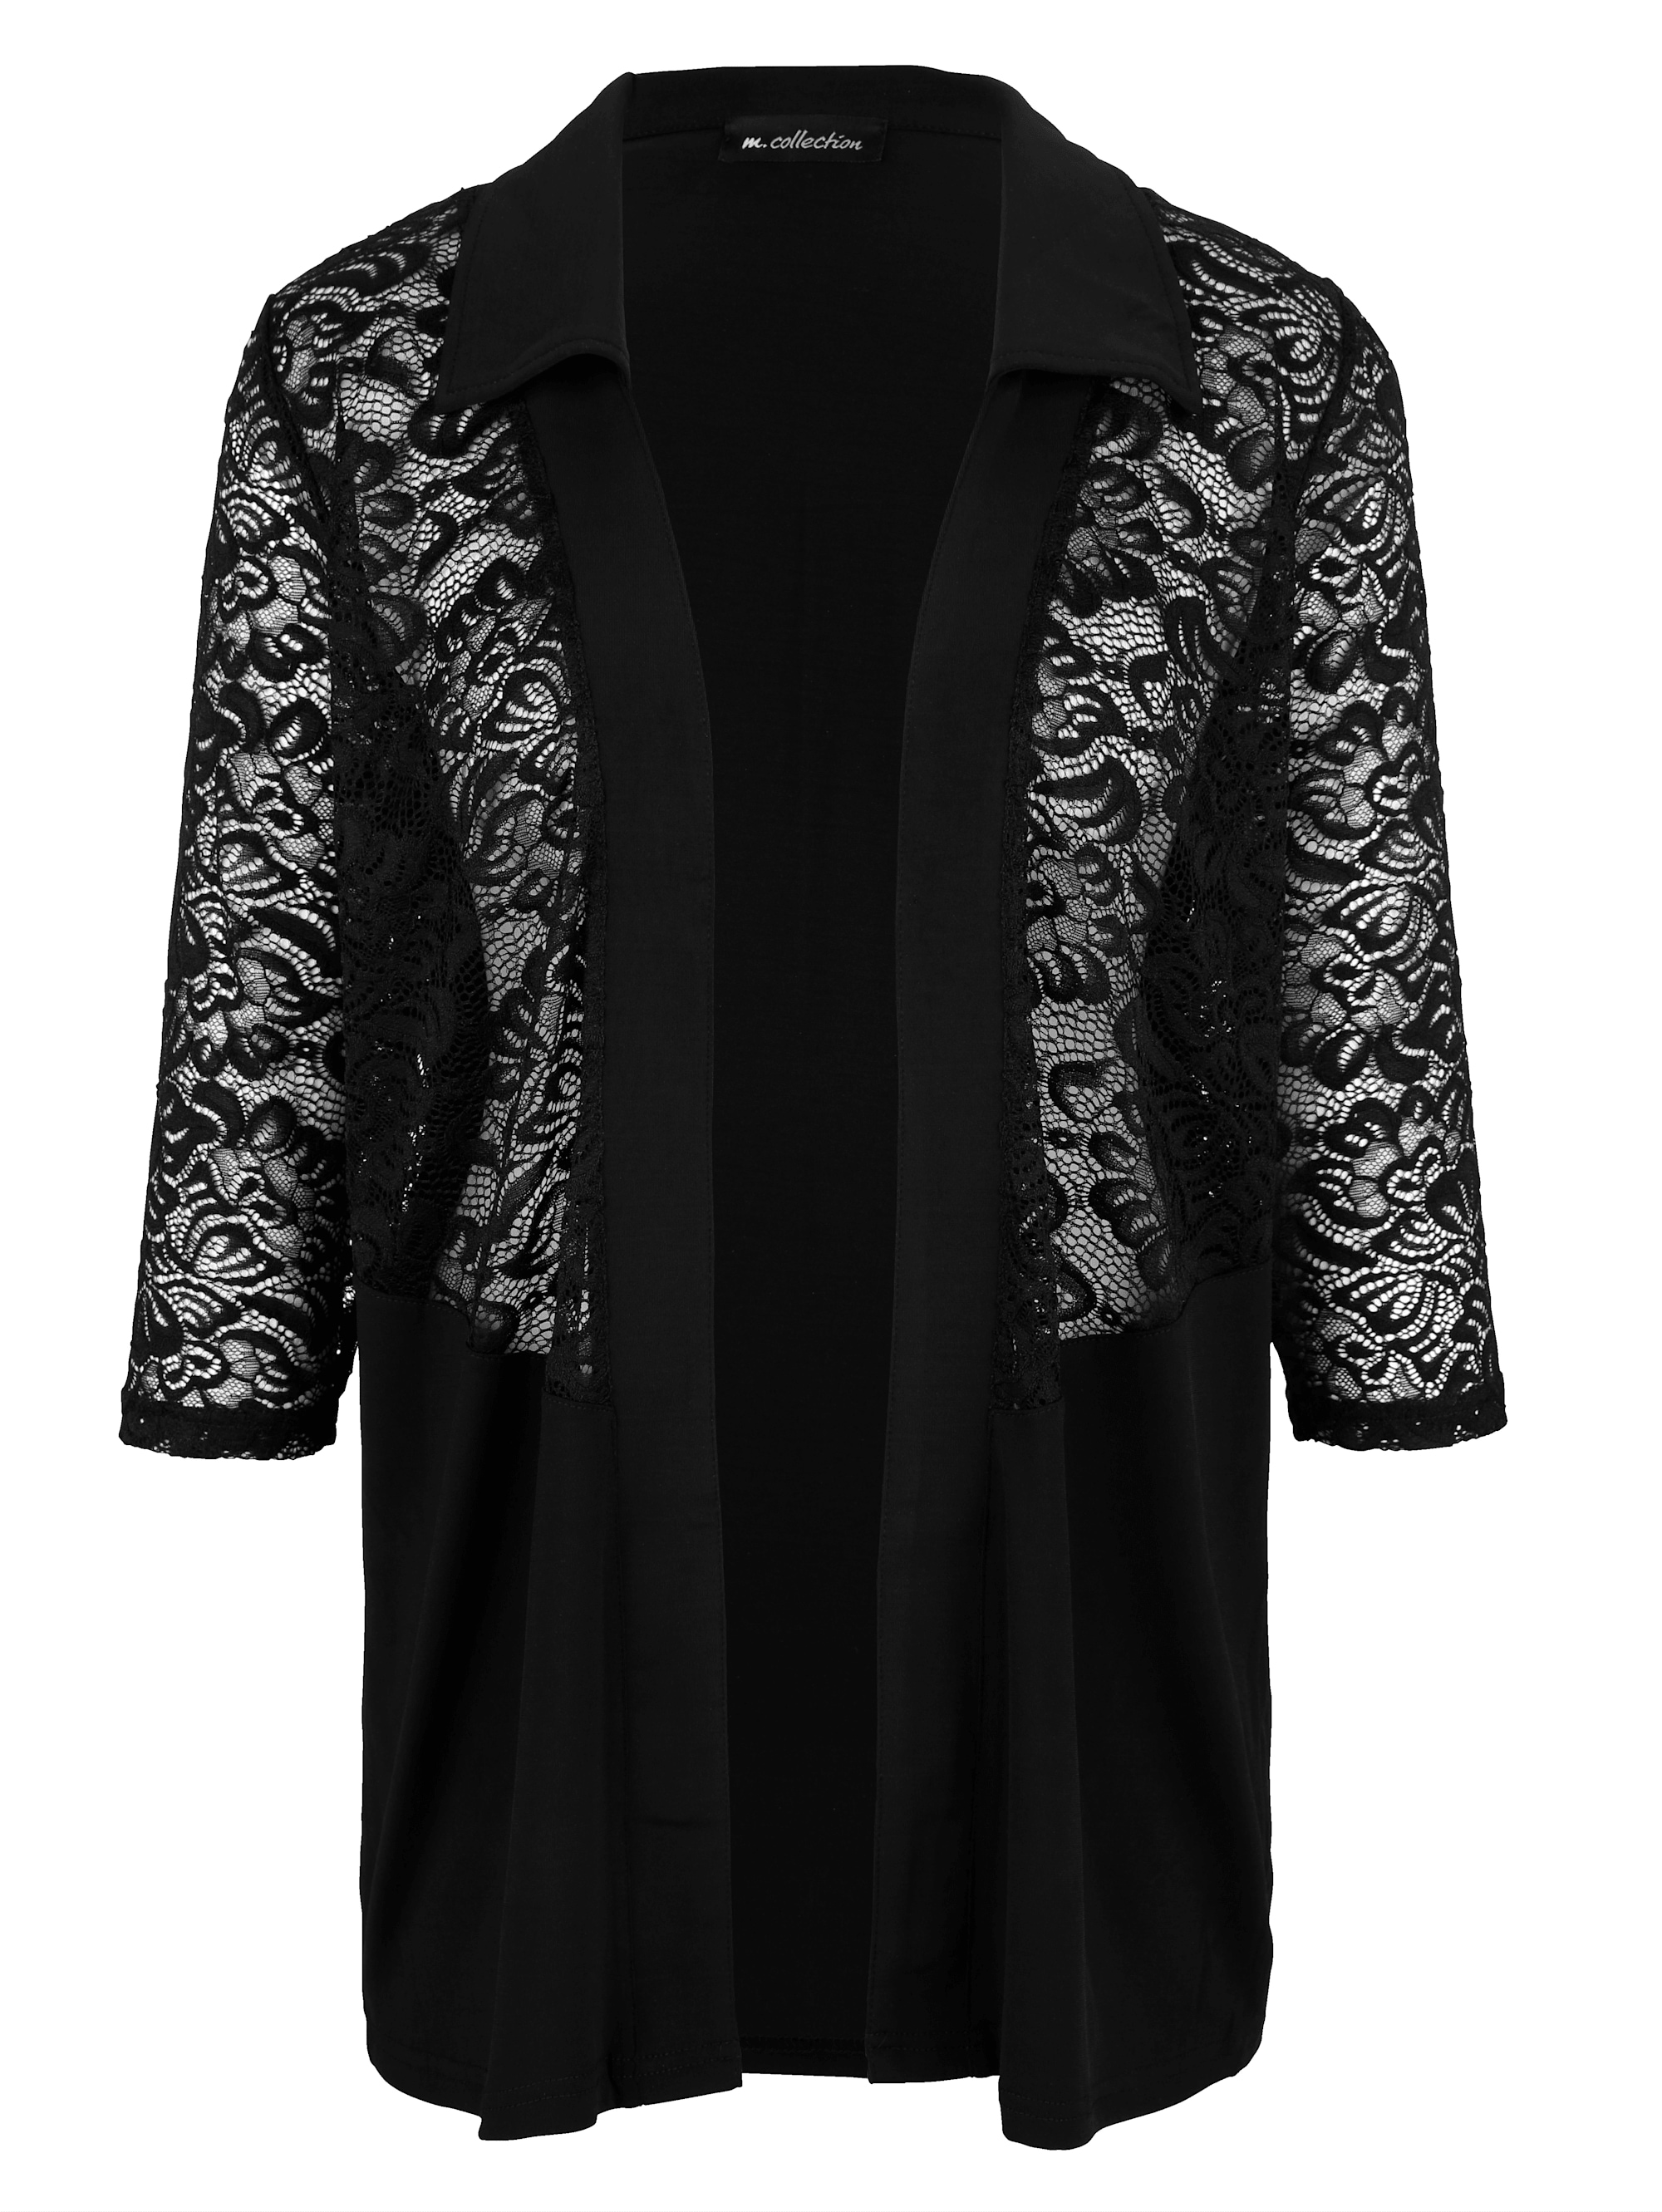 m. collection -  Shirtjacke